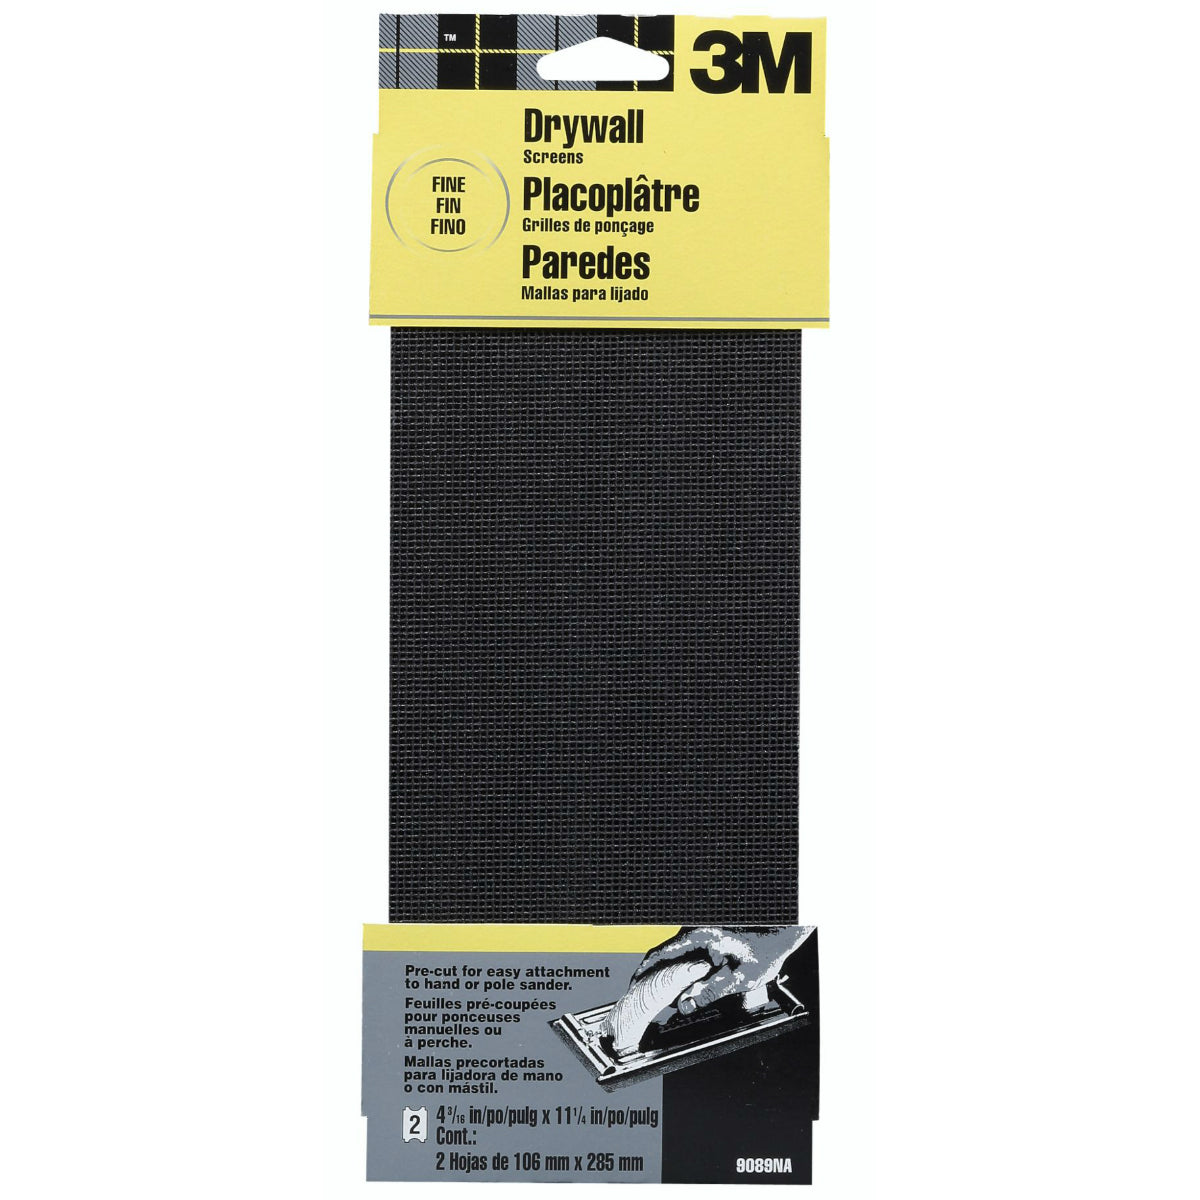 "3M 9089 Sand-Pak Drywall Sanding Screen, 4-3/16"" x 11-1/4"", Fine Grit, 2-Pack"